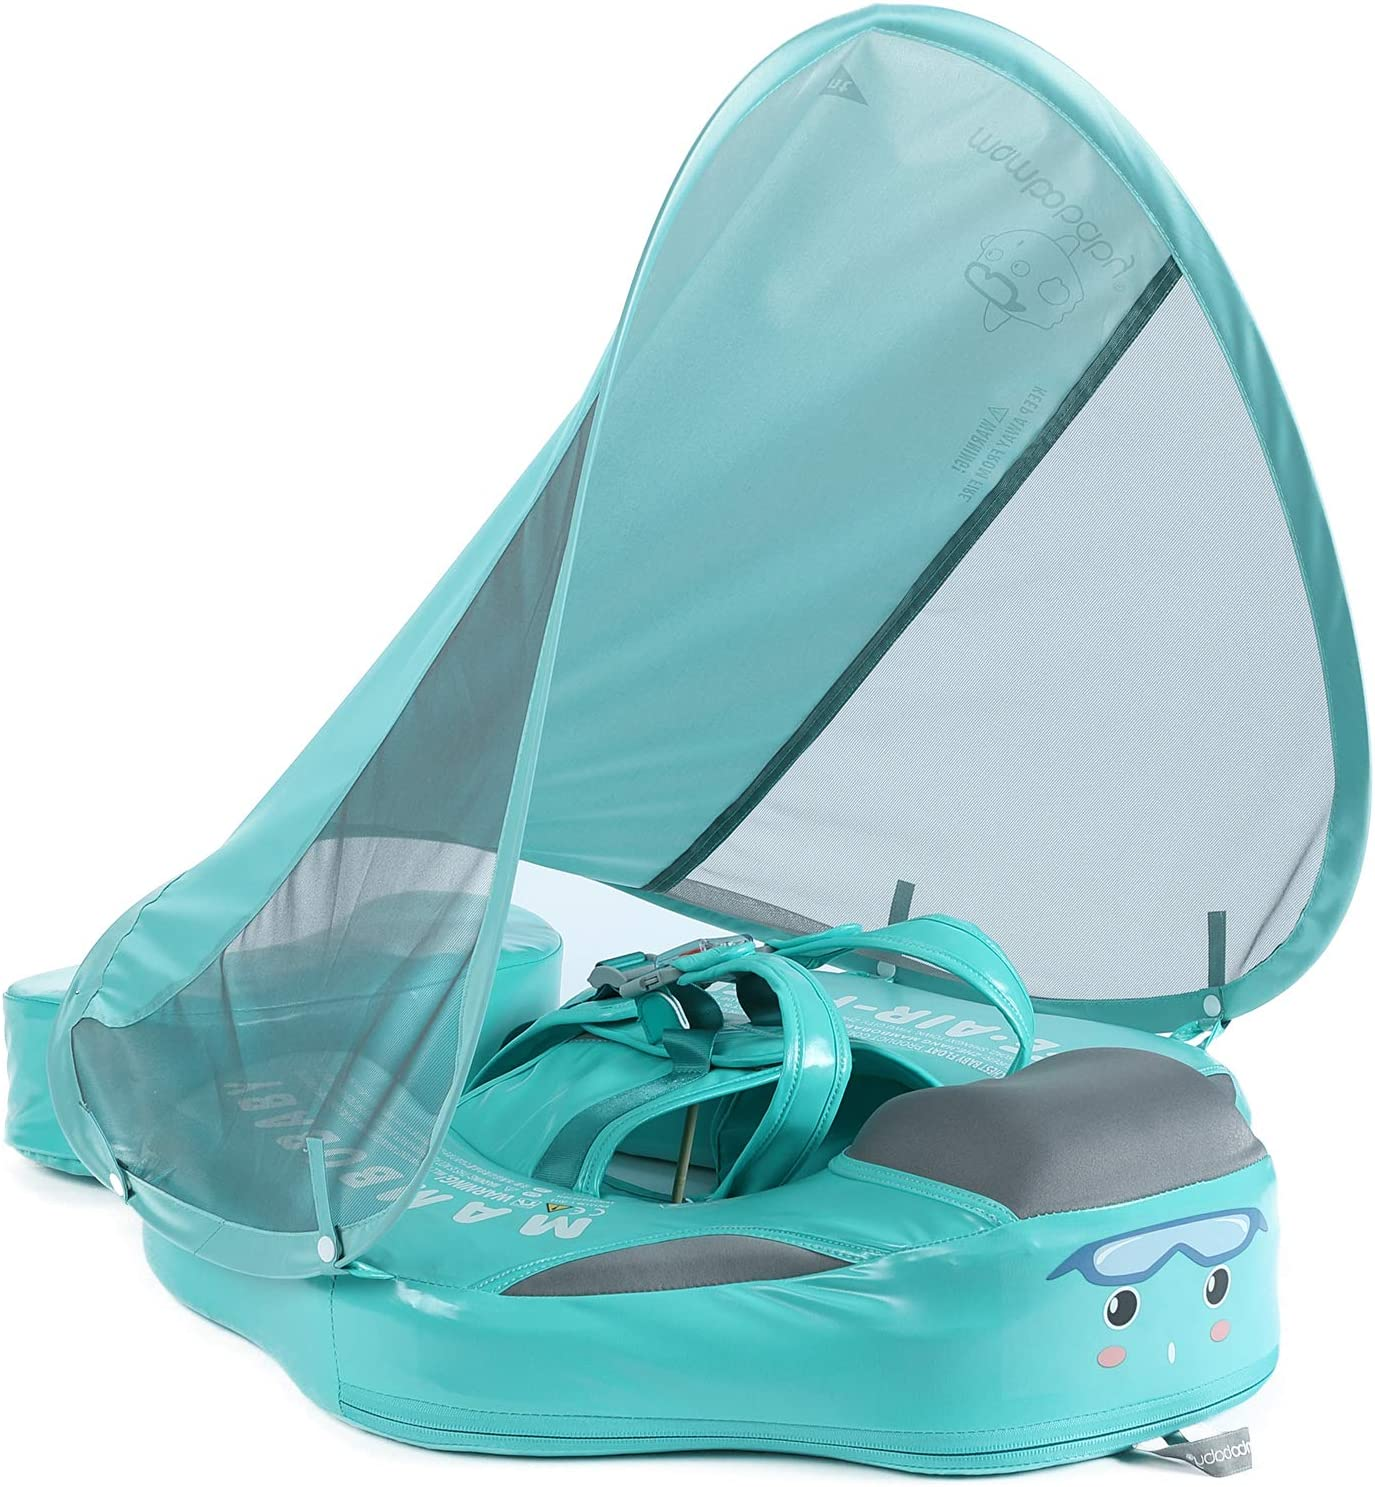 HECCEI Add Tail Newest Mambobaby Baby Swim No with At the price Dedication Canopy Float